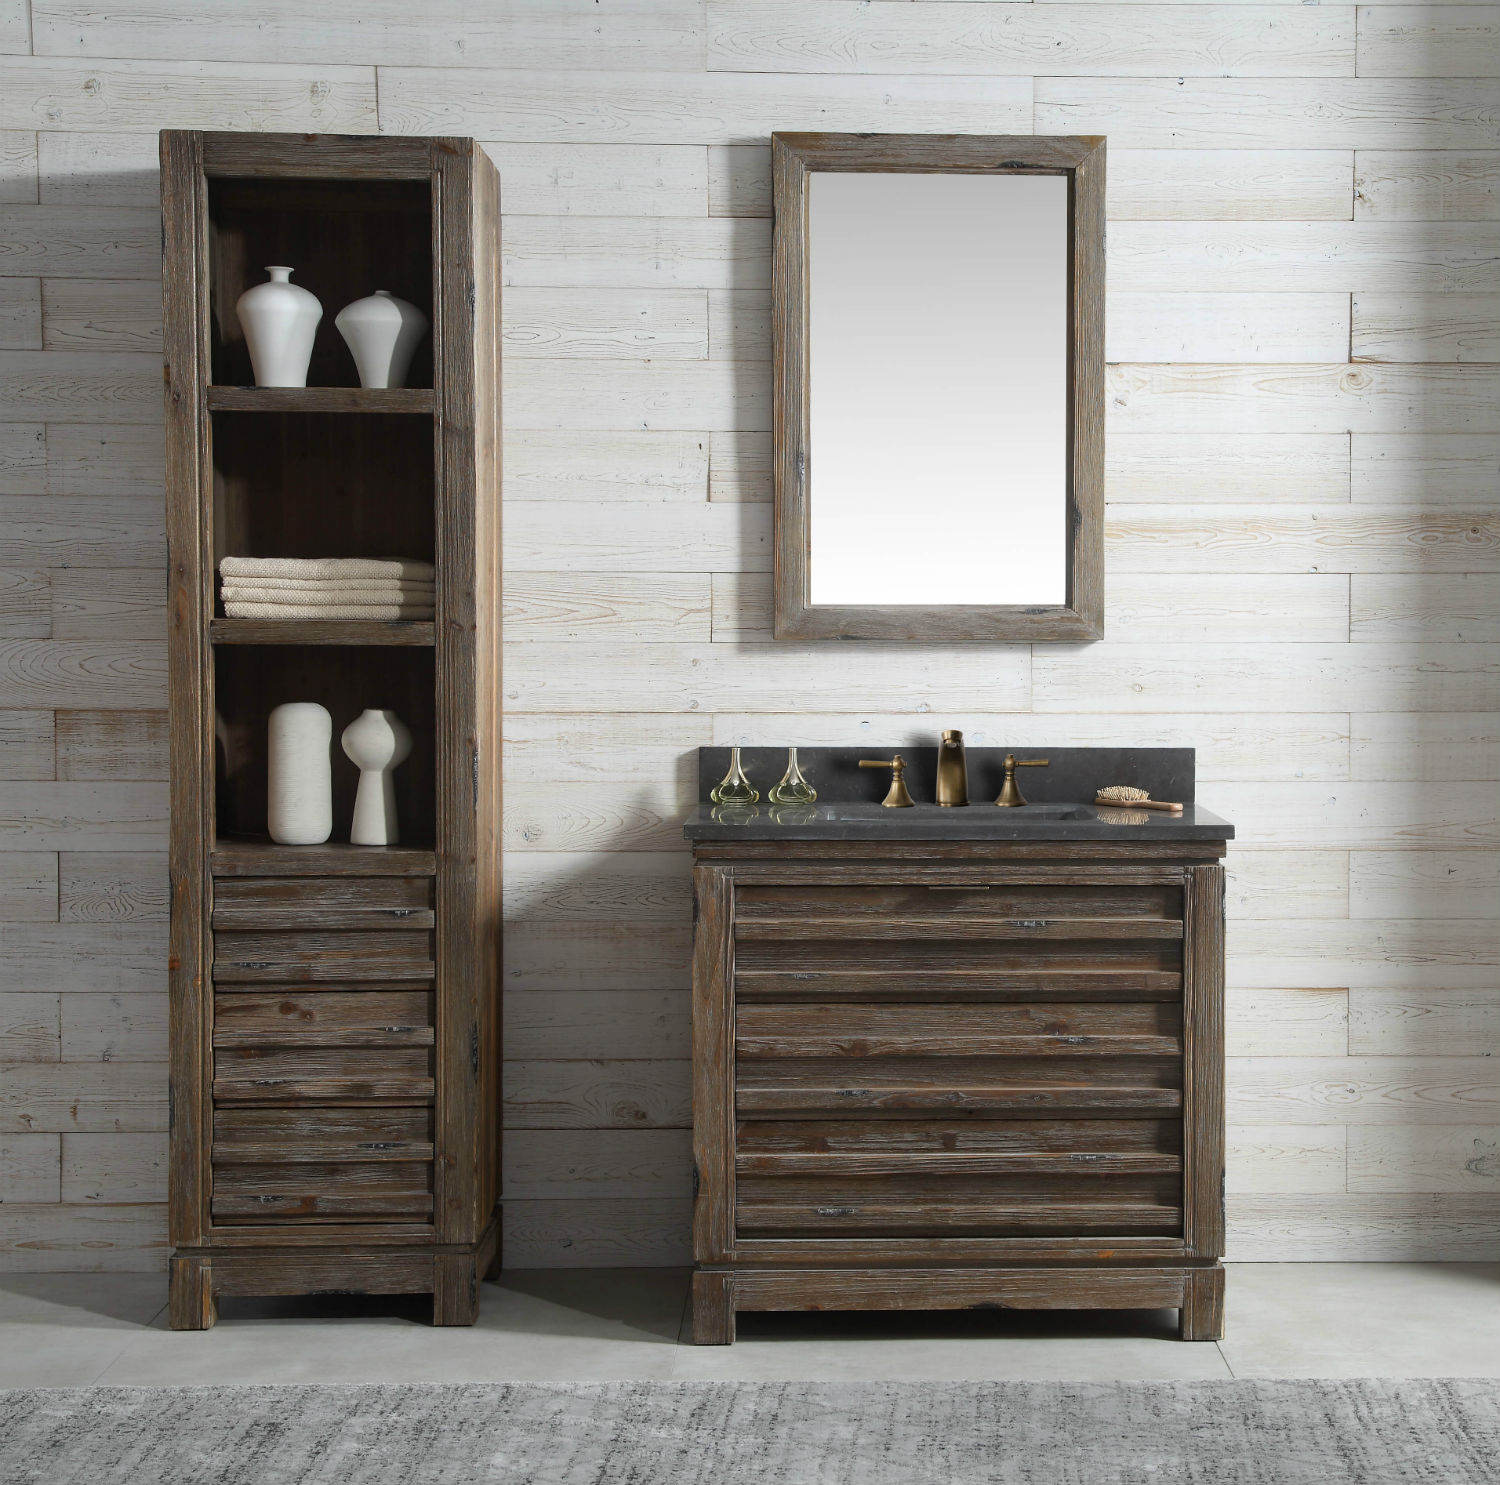 furniture native bathroom reclaimed from v bath wood americana finish style in distressed vanities farmhouse lights rustic country vessel base anvil vanity modern sink barn a and trails bases